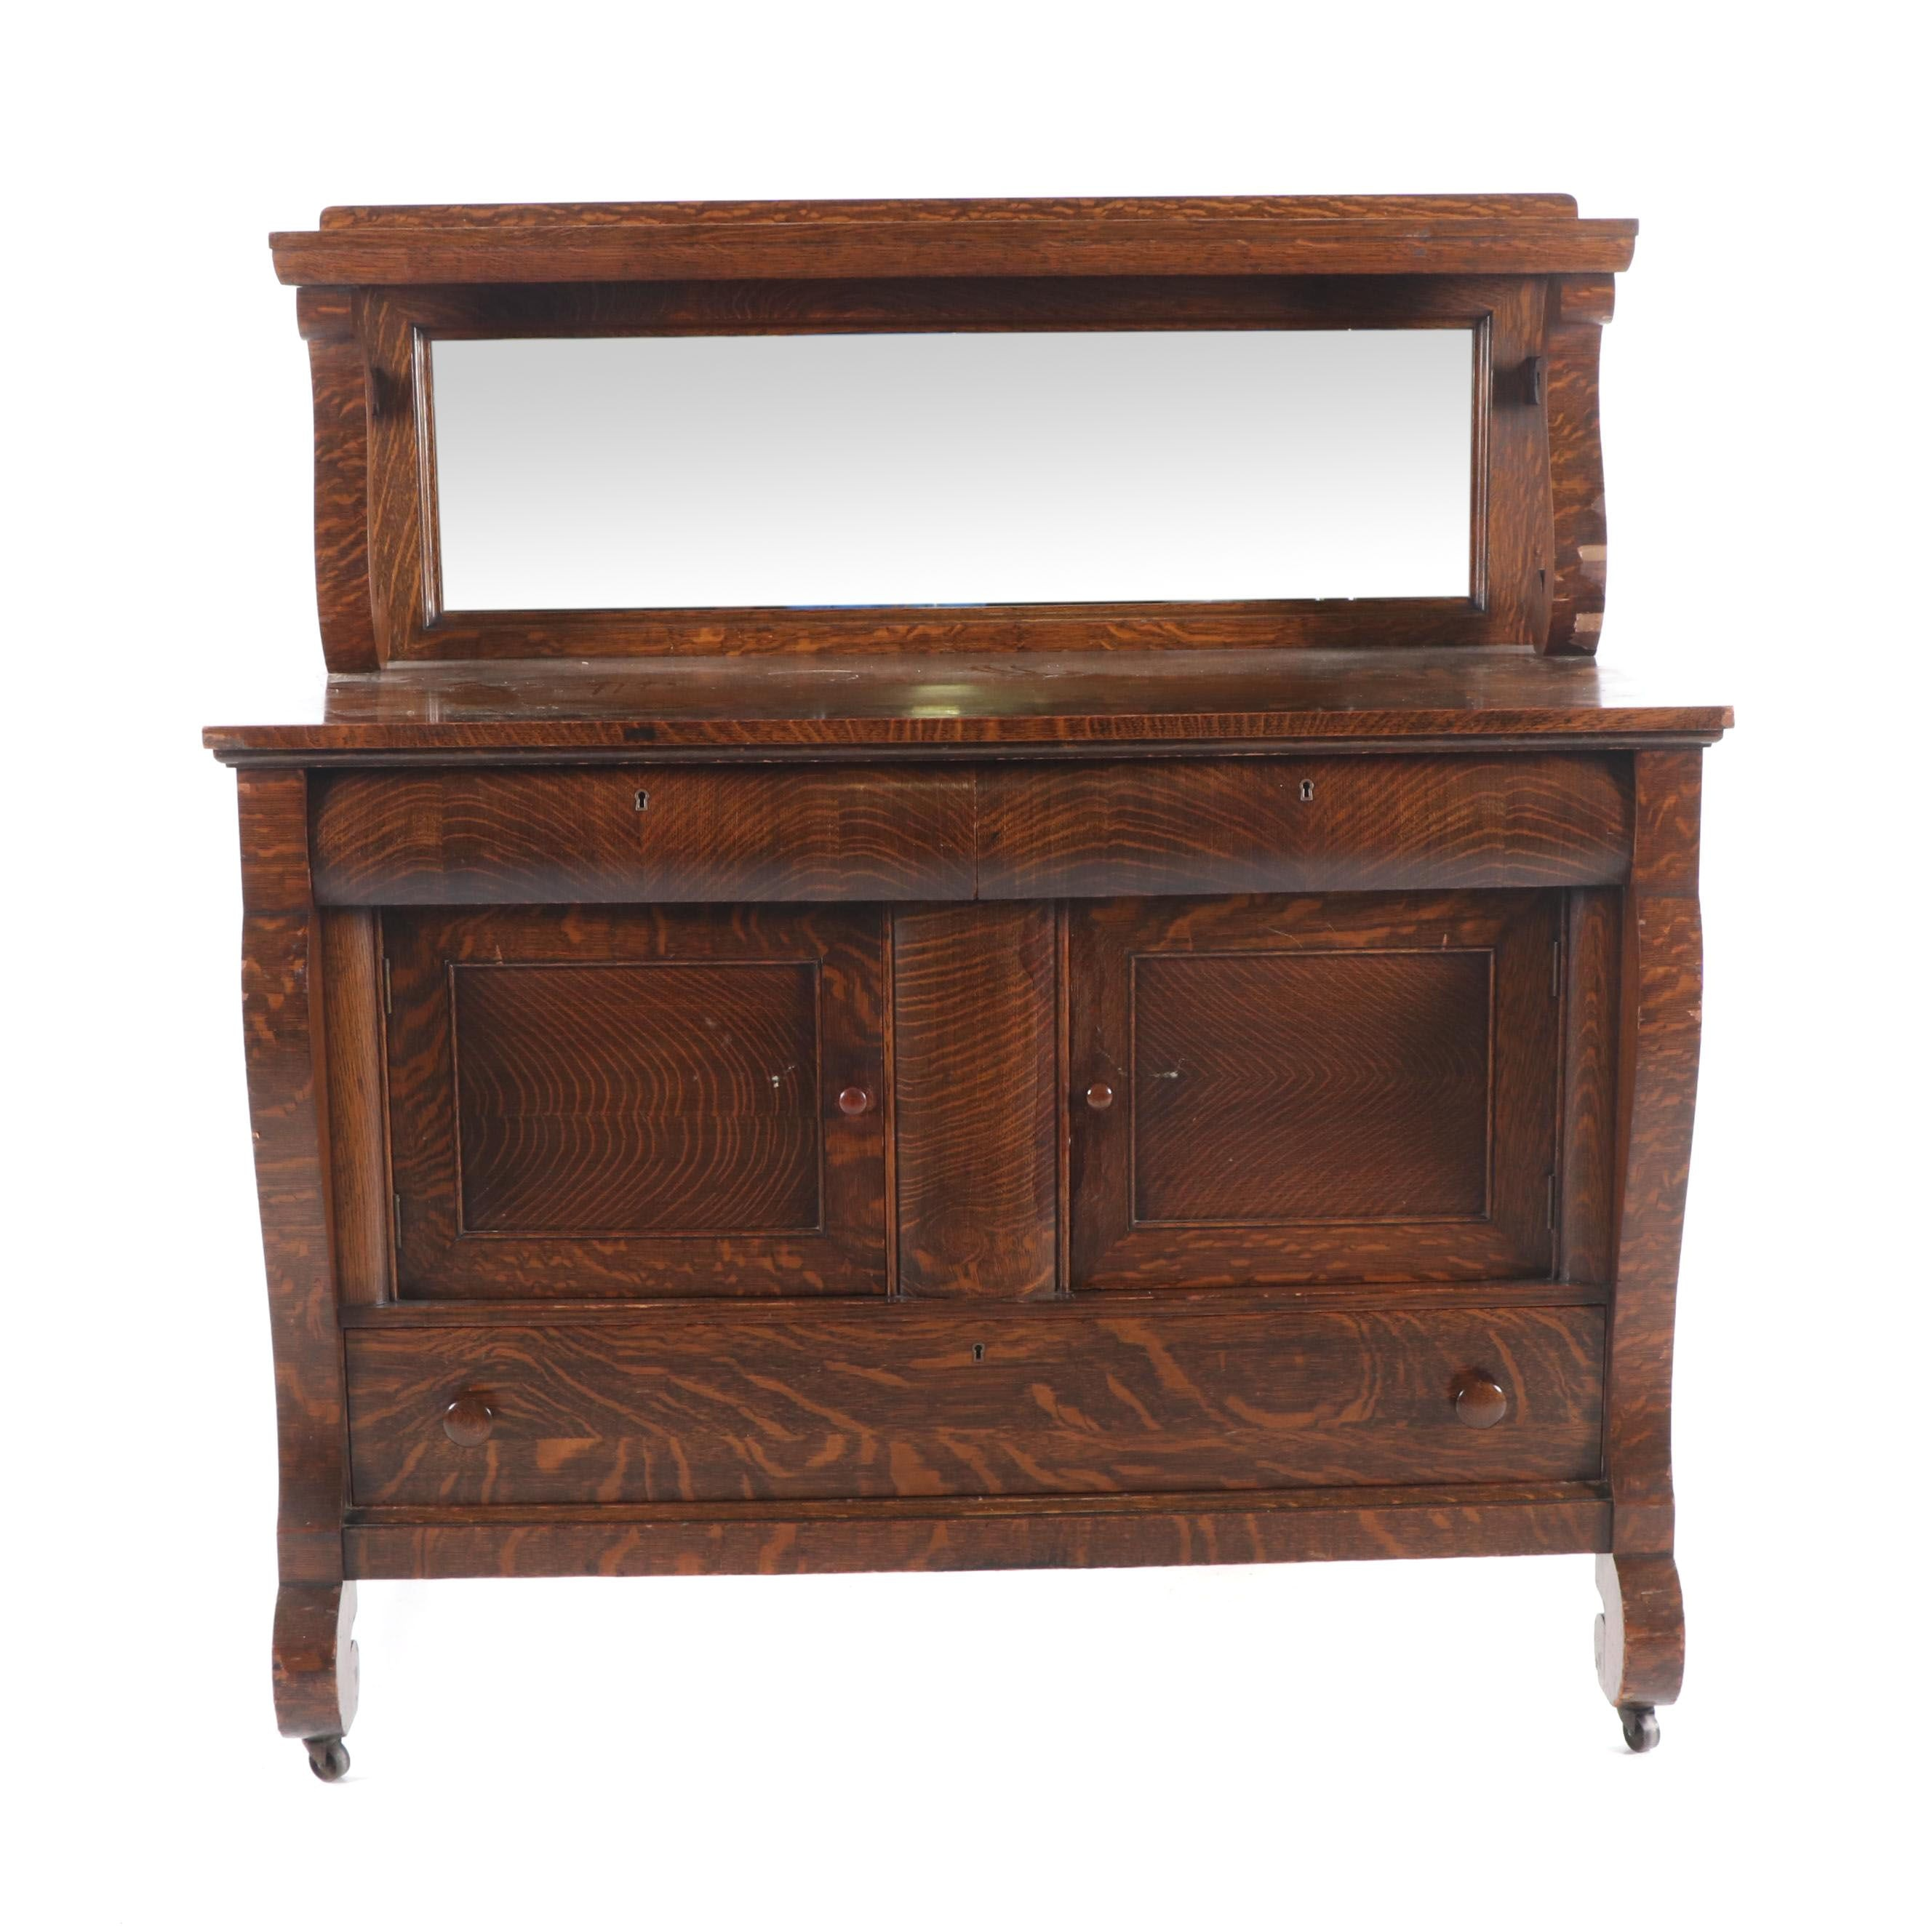 American Empire Style Tiger Oak Buffet with Mirror, Late 19th Century